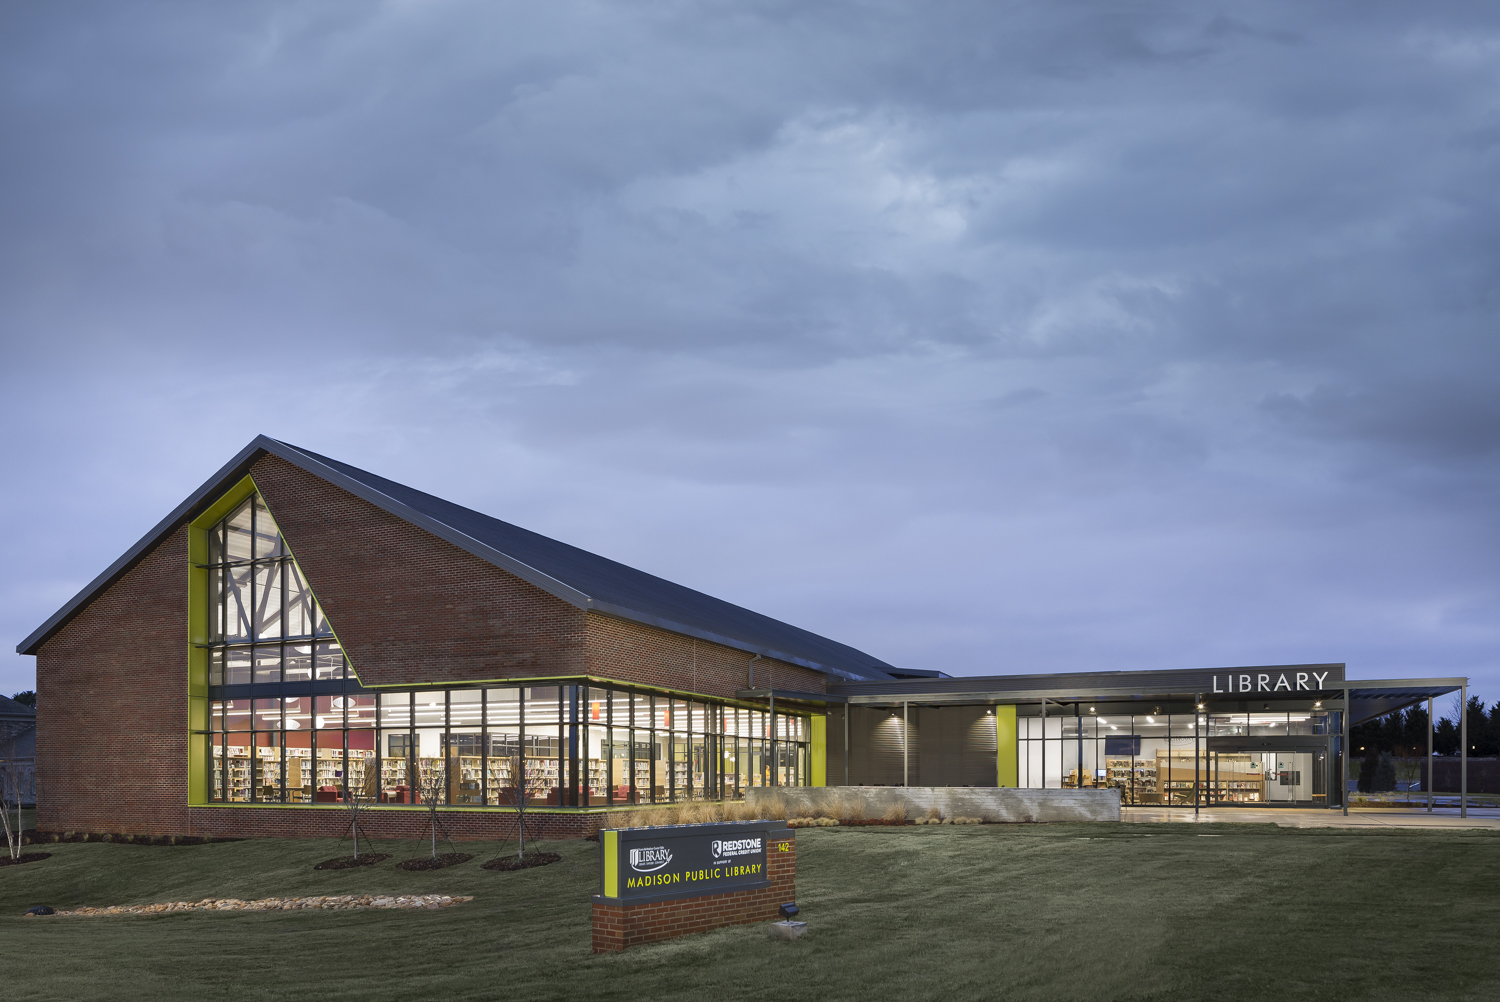 MADISON PUBLIC LIBRARY - Library in Madison Alabama photographed for Turner Construction and HBM Architects